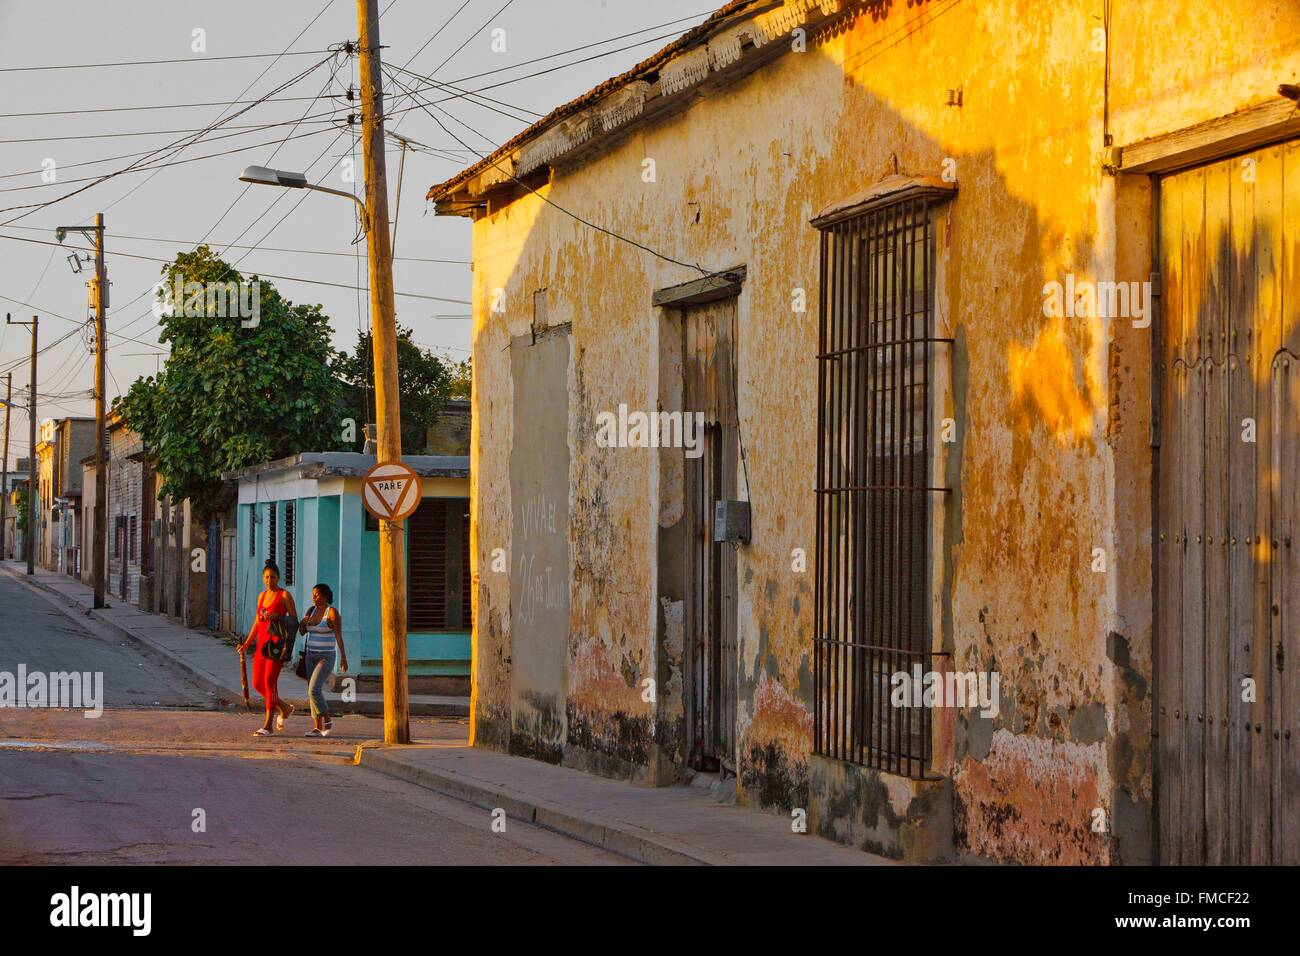 Cuba, Holguin, Gibara, House with ocher walls decrepit - Stock Image